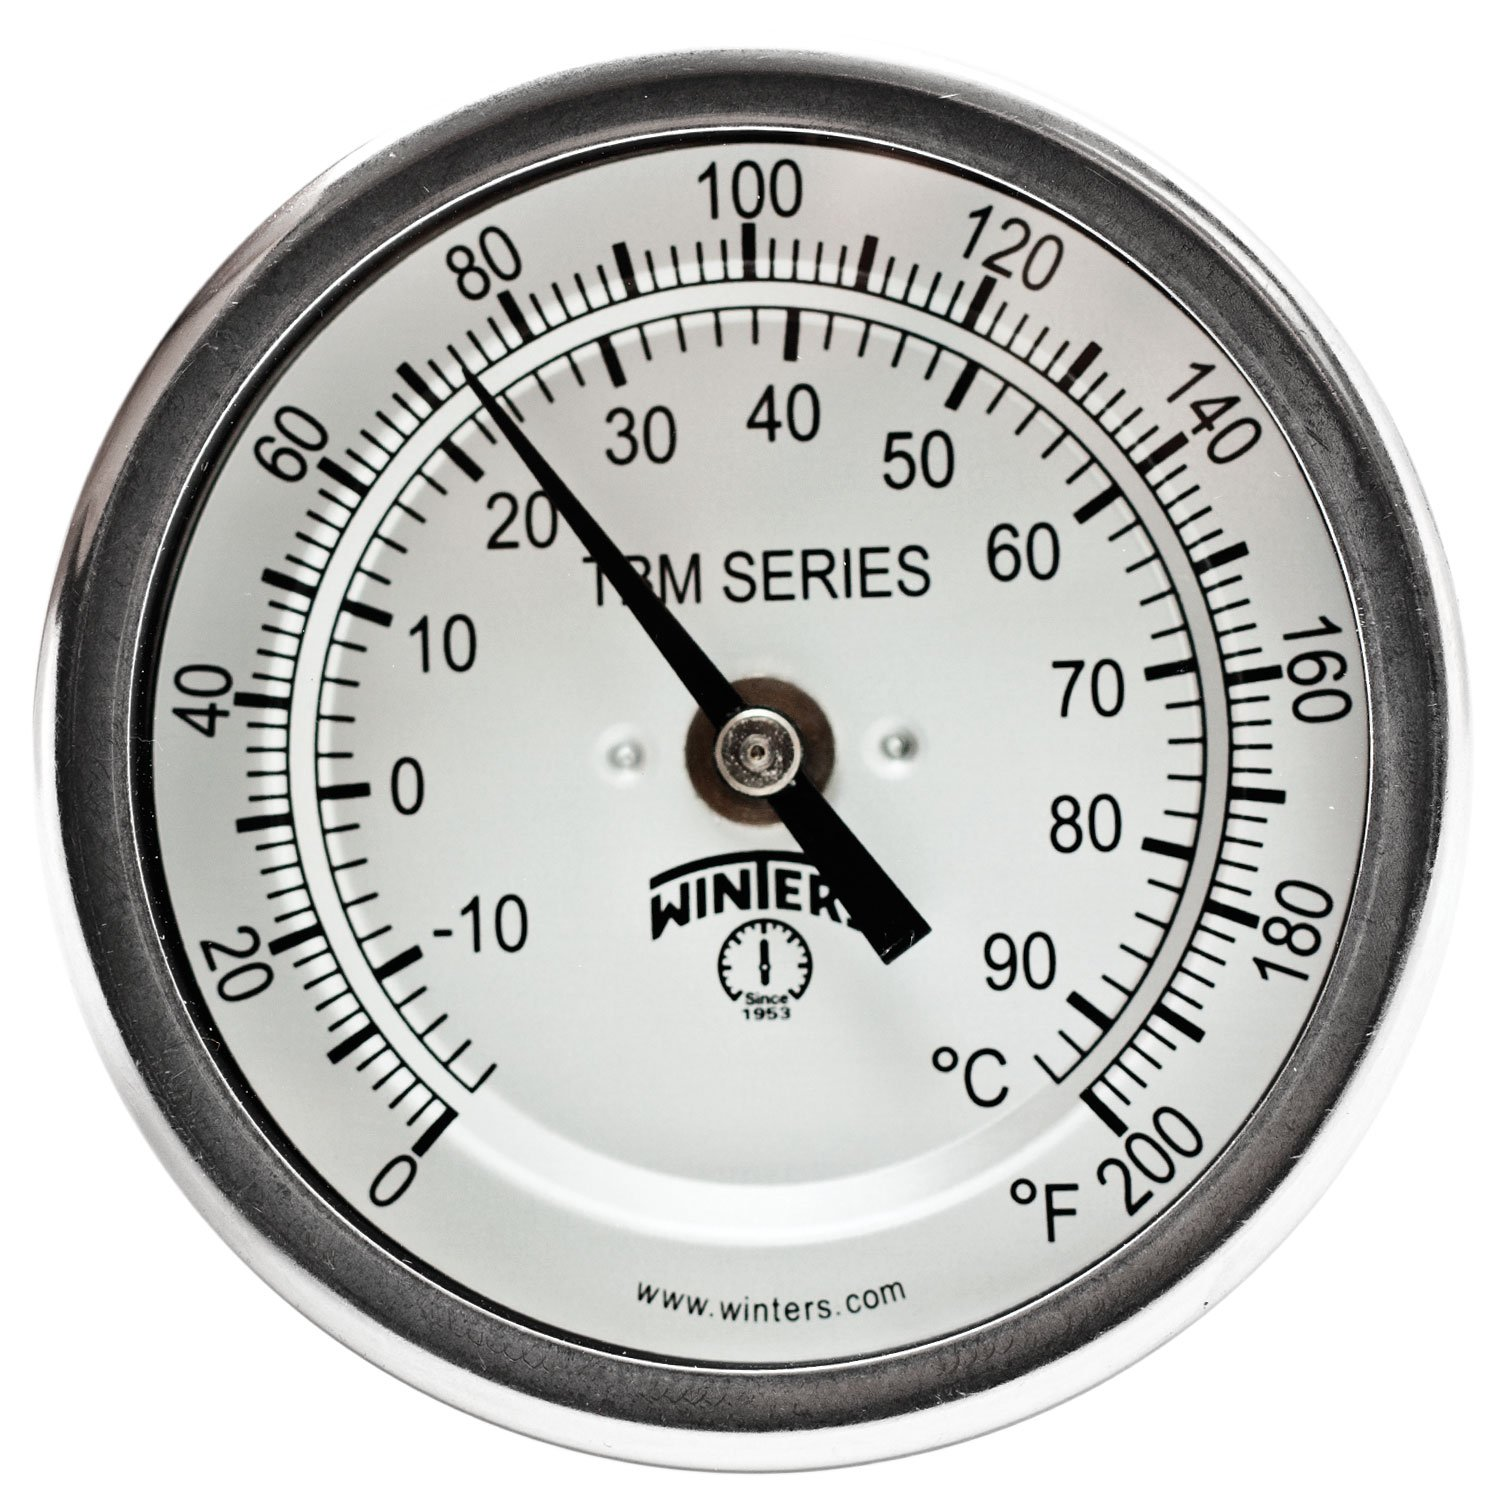 Winters TBM Series Stainless Steel 304 Dual Scale Bi-Metal Thermometer, 2-1/2'' Stem, 1/2'' NPT Fixed Center Back Mount Connection, 3'' Dial, 0-200 F/C Range by Winters Instruments